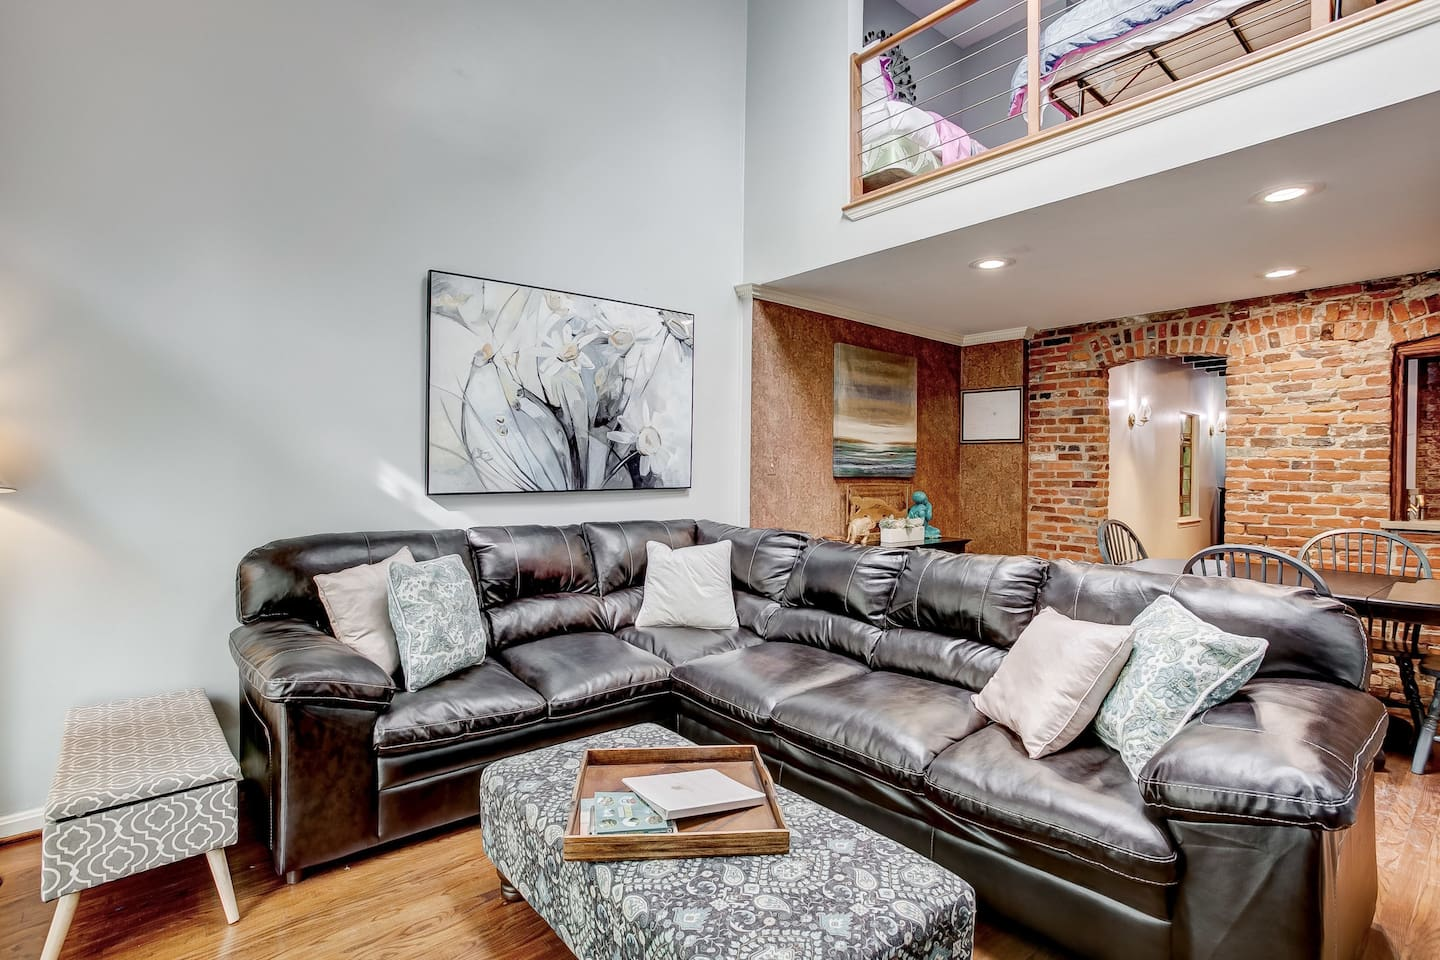 Come in and relax before or after discovering Baltimore in this modern, astonishing loft! This will be perfect for you and your group to stay in this historic area of town. Enjoy great nearby restaurants, bars, and nightlife!